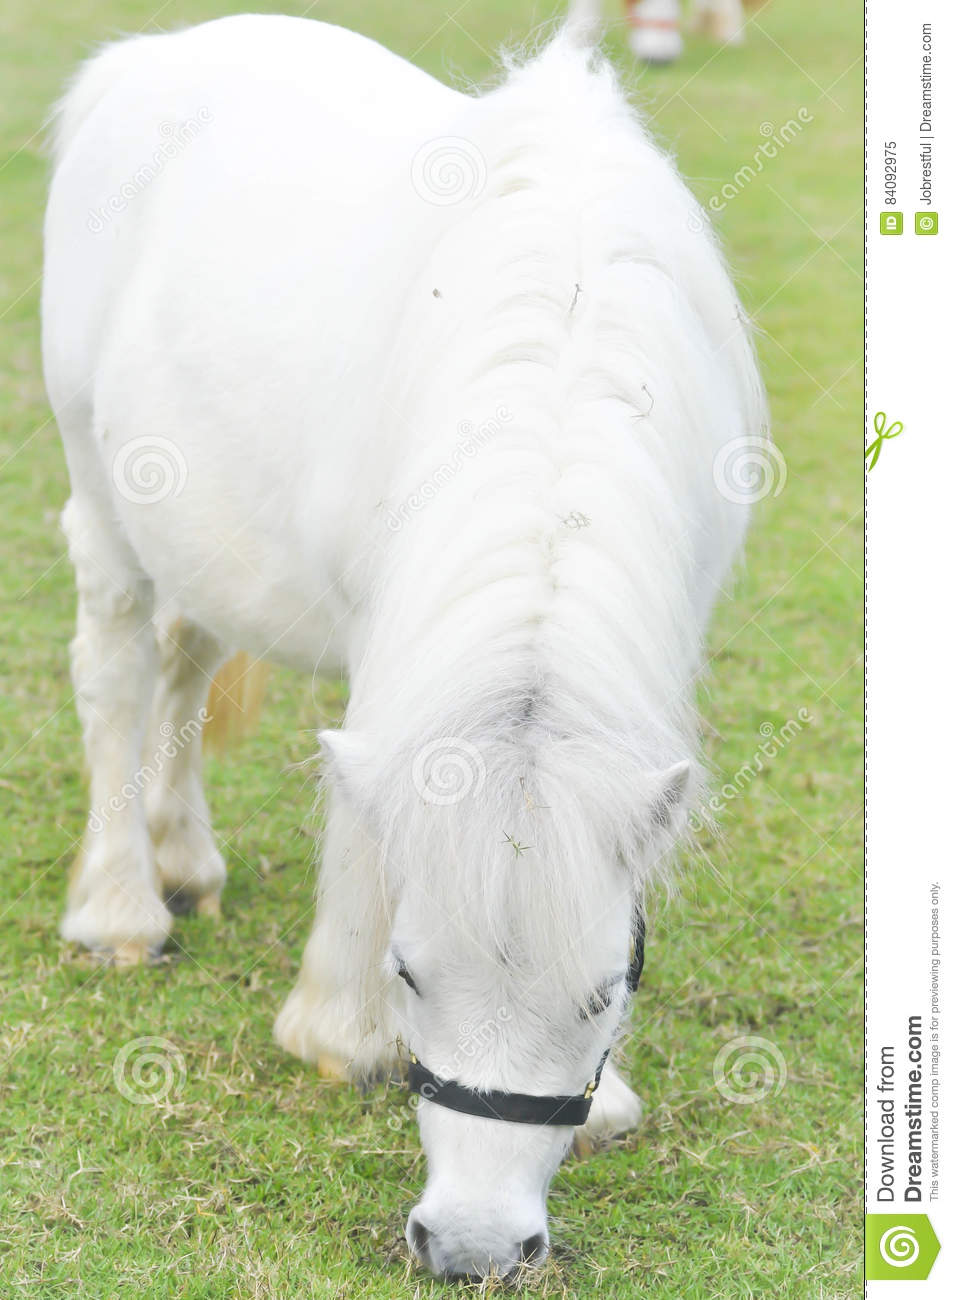 White horse`s eating some grass on the farm